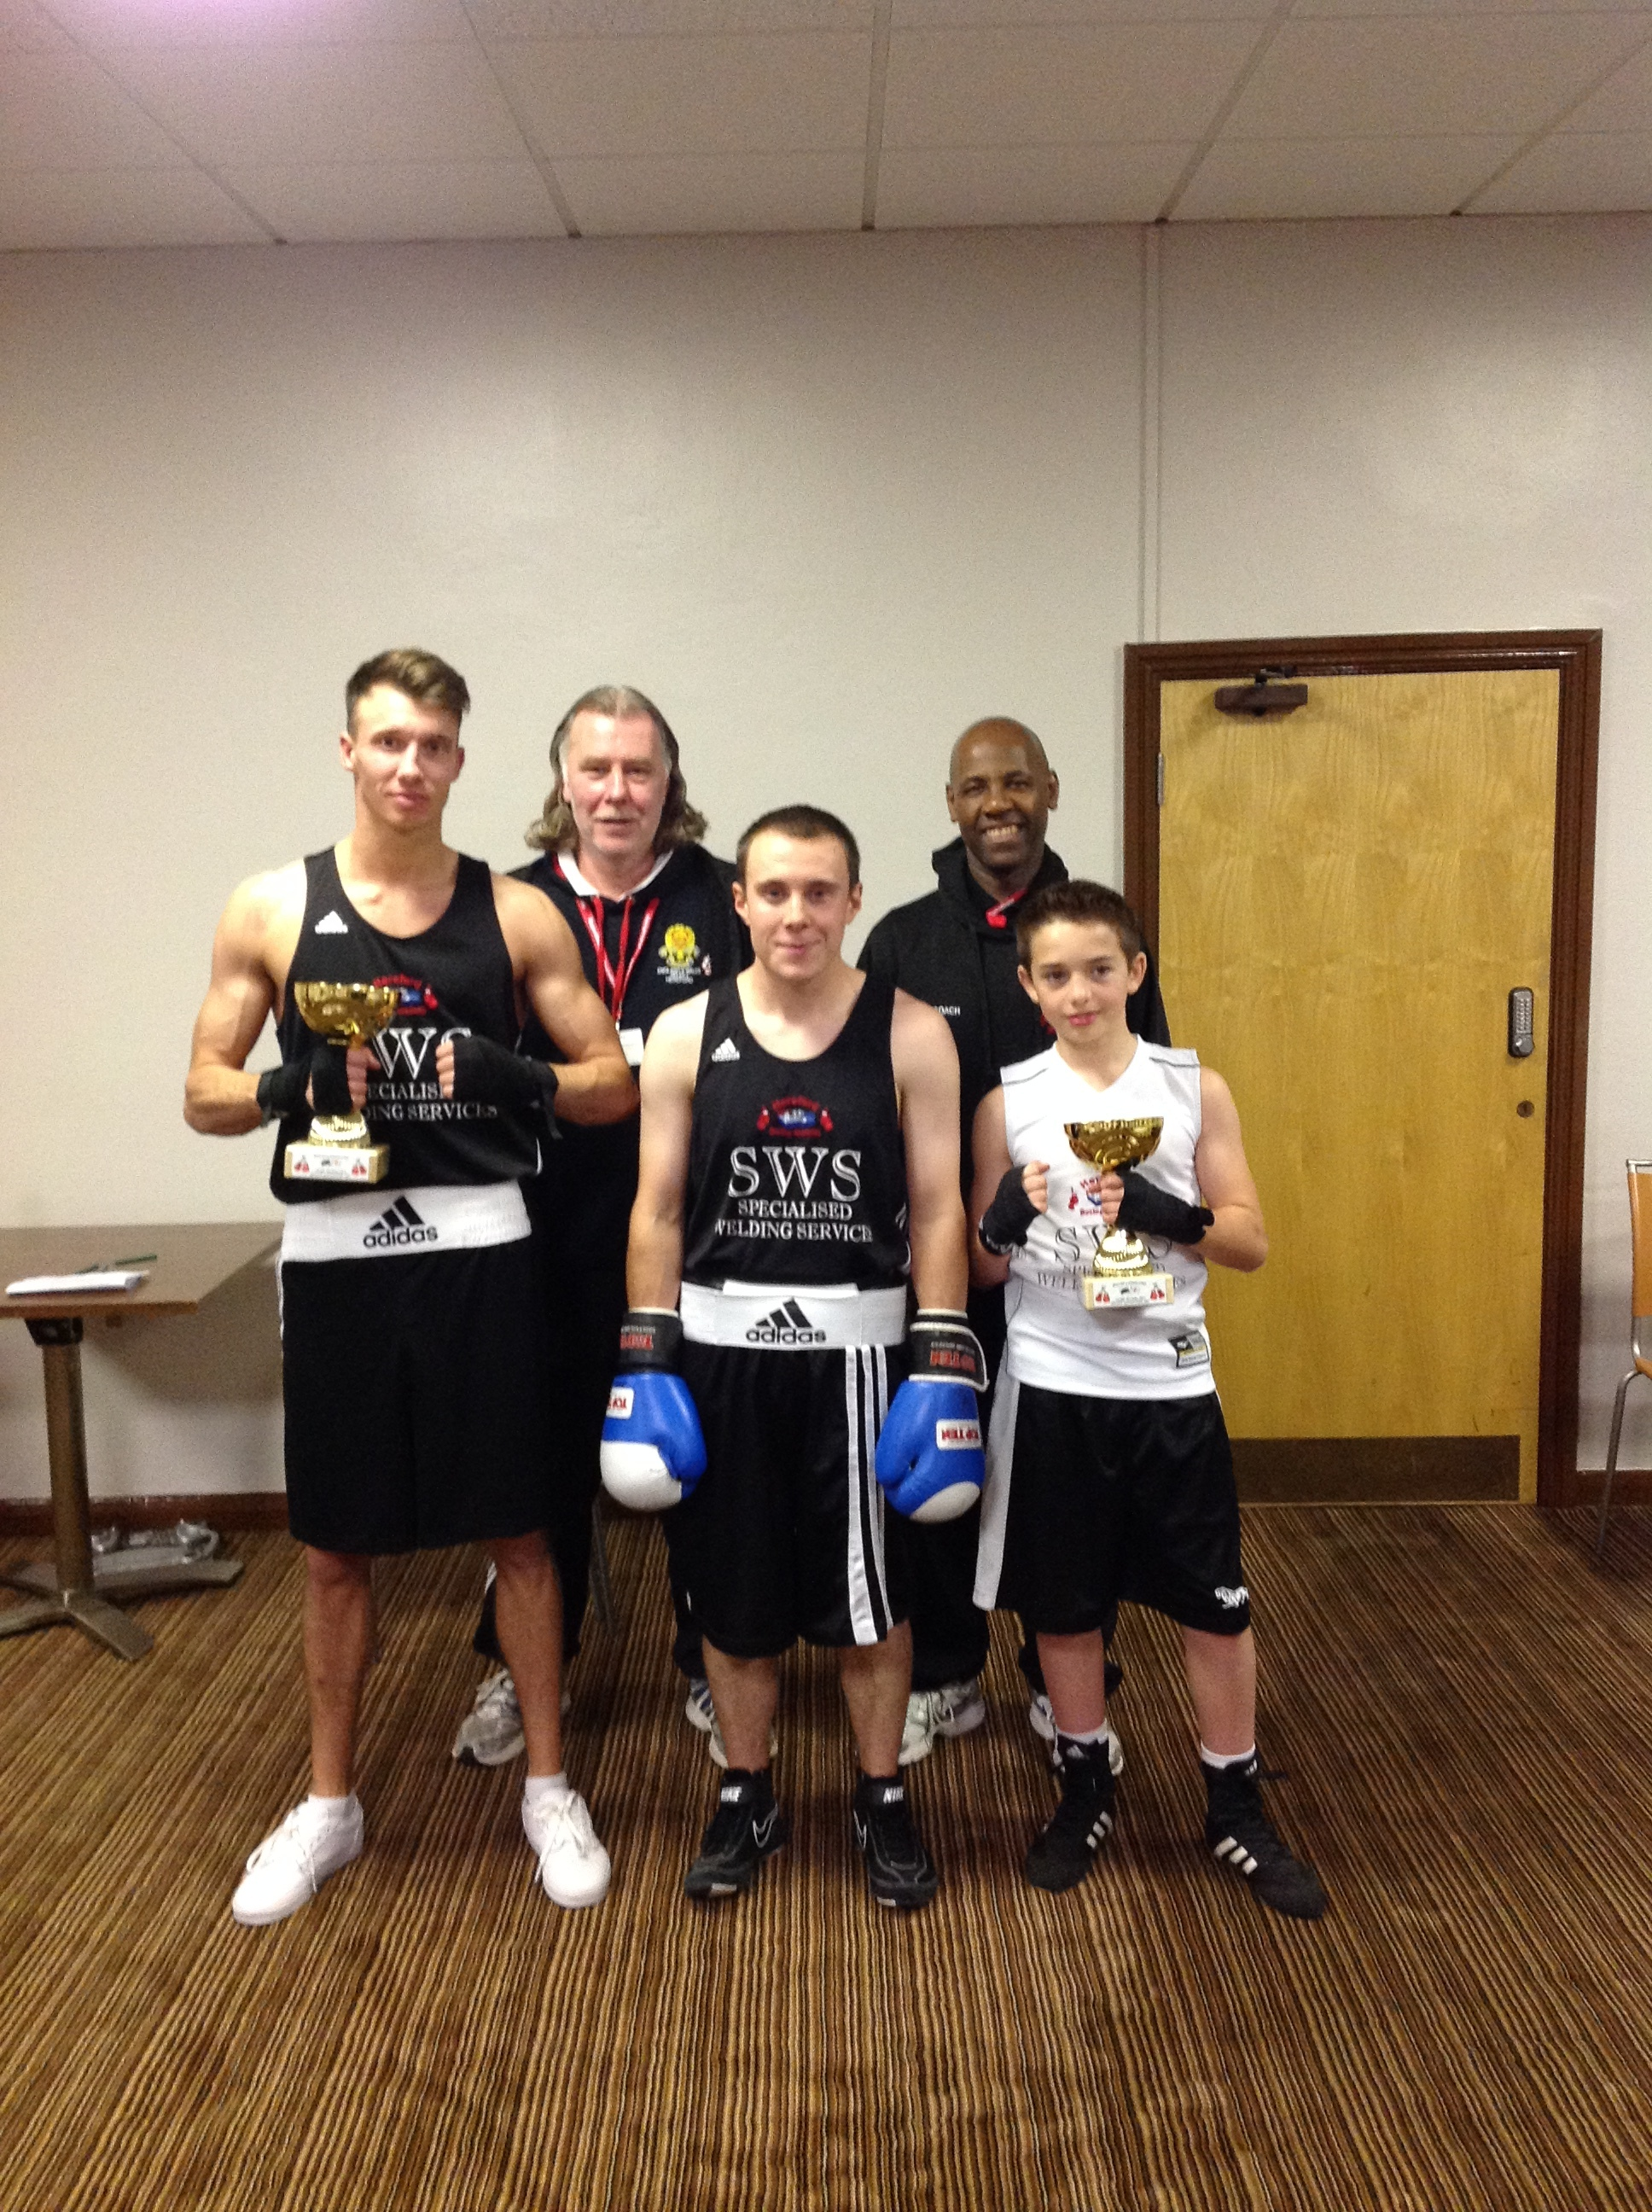 From left: Joe Donovan (boxer), Neil Gibbons (coach), Tom Beech (boxer), Del Strachan (head coach) and Callum Blackwell (boxer)